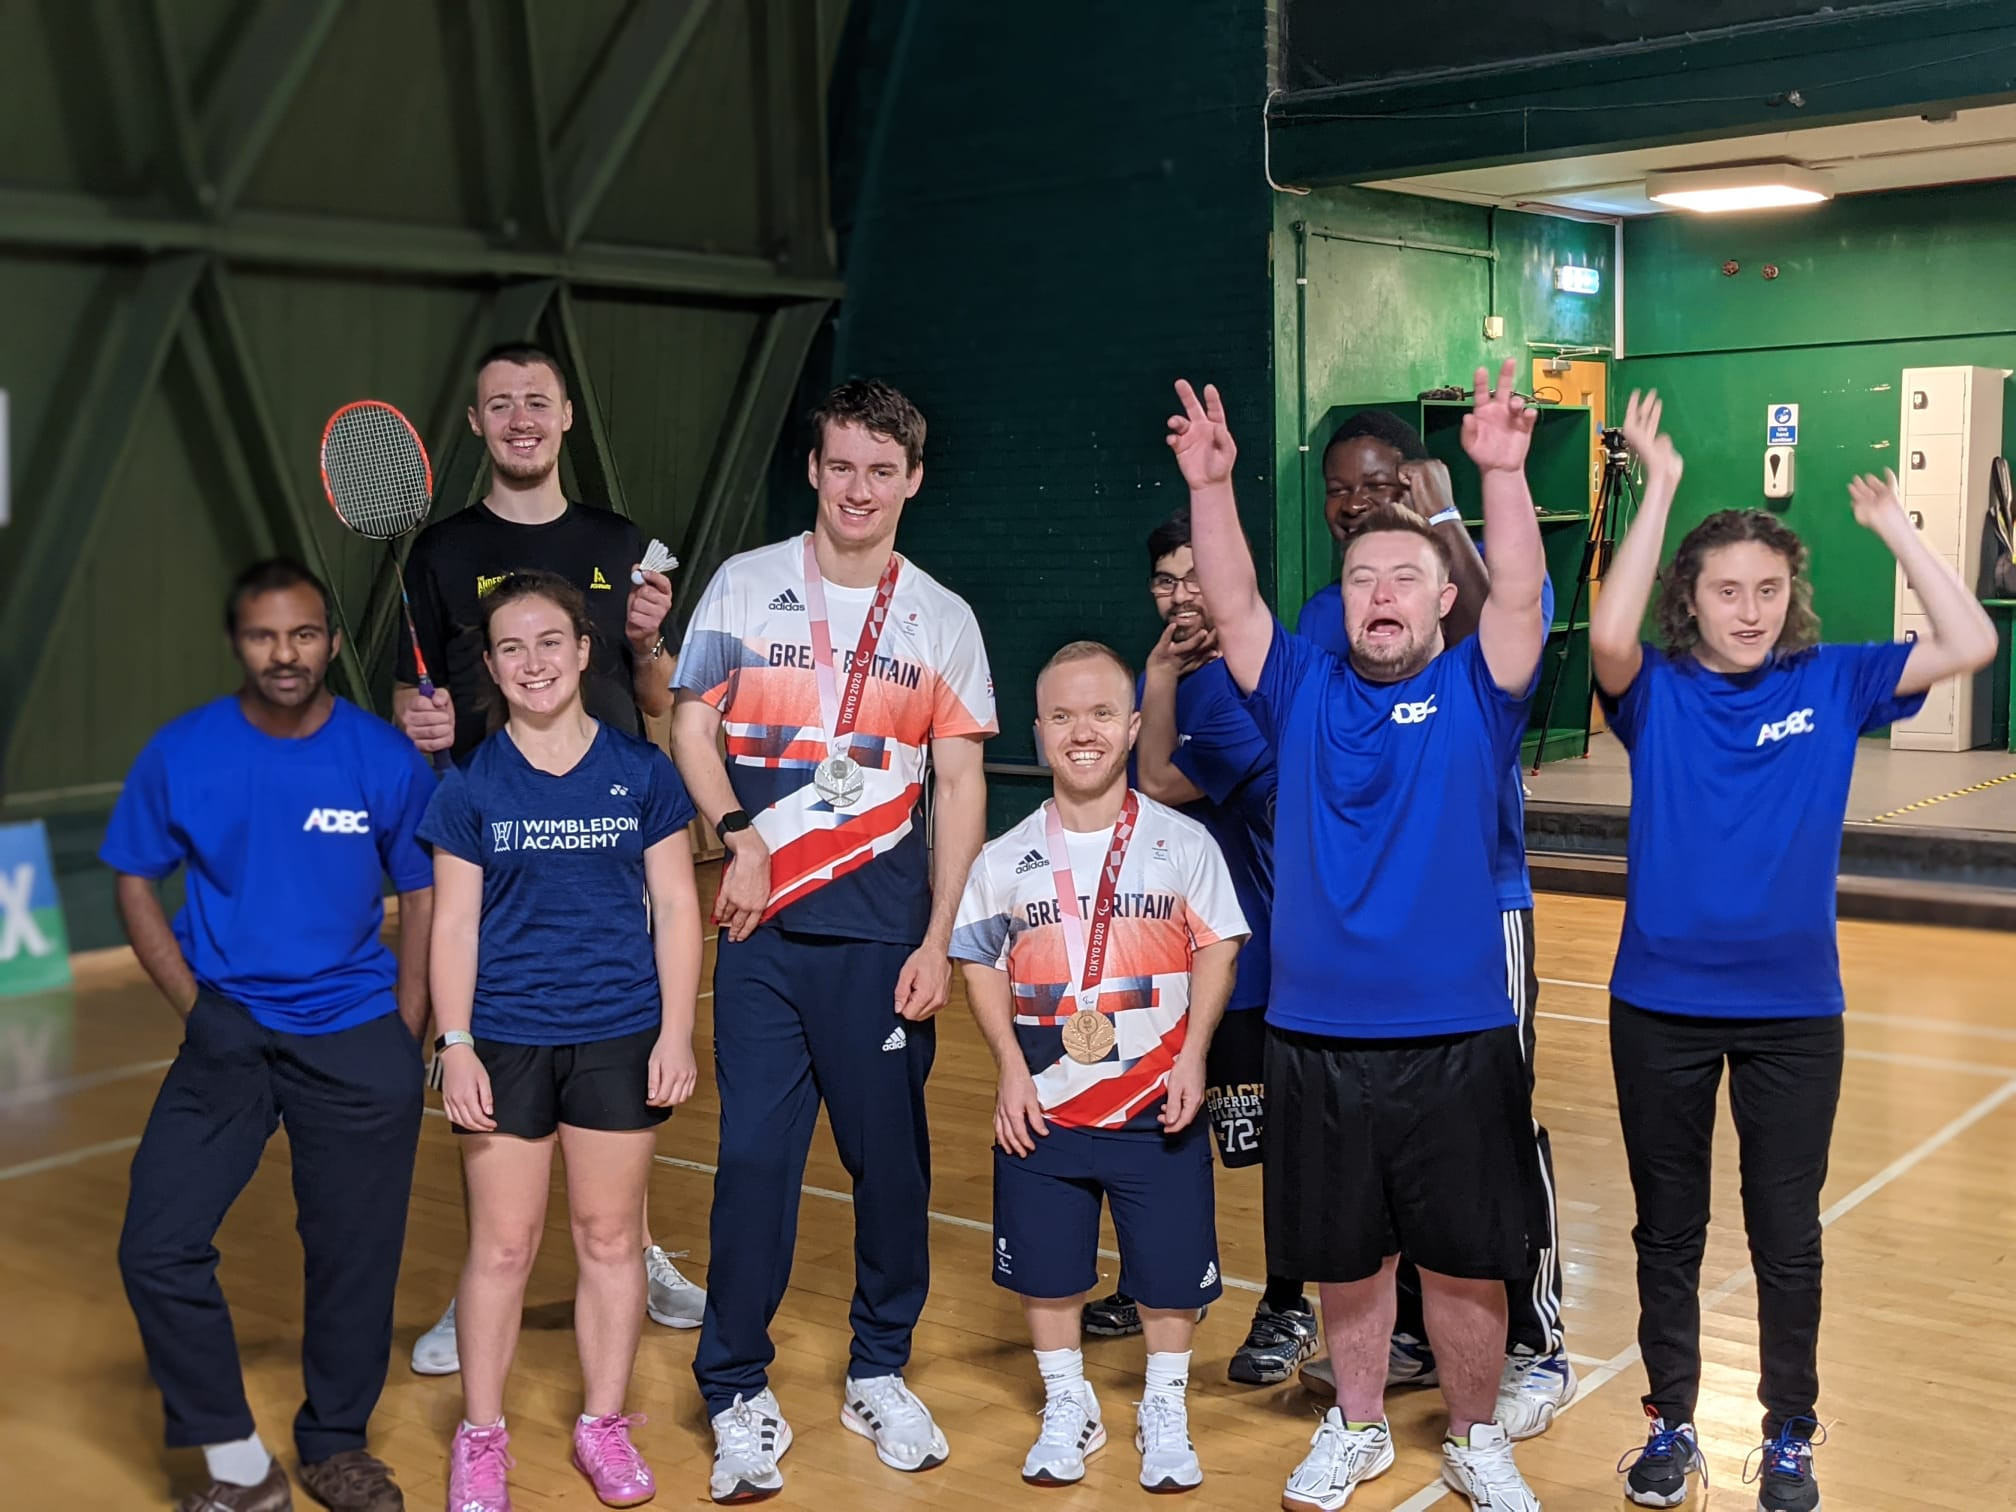 Paralympic medallists launch Badminton England's Big Hit campaign